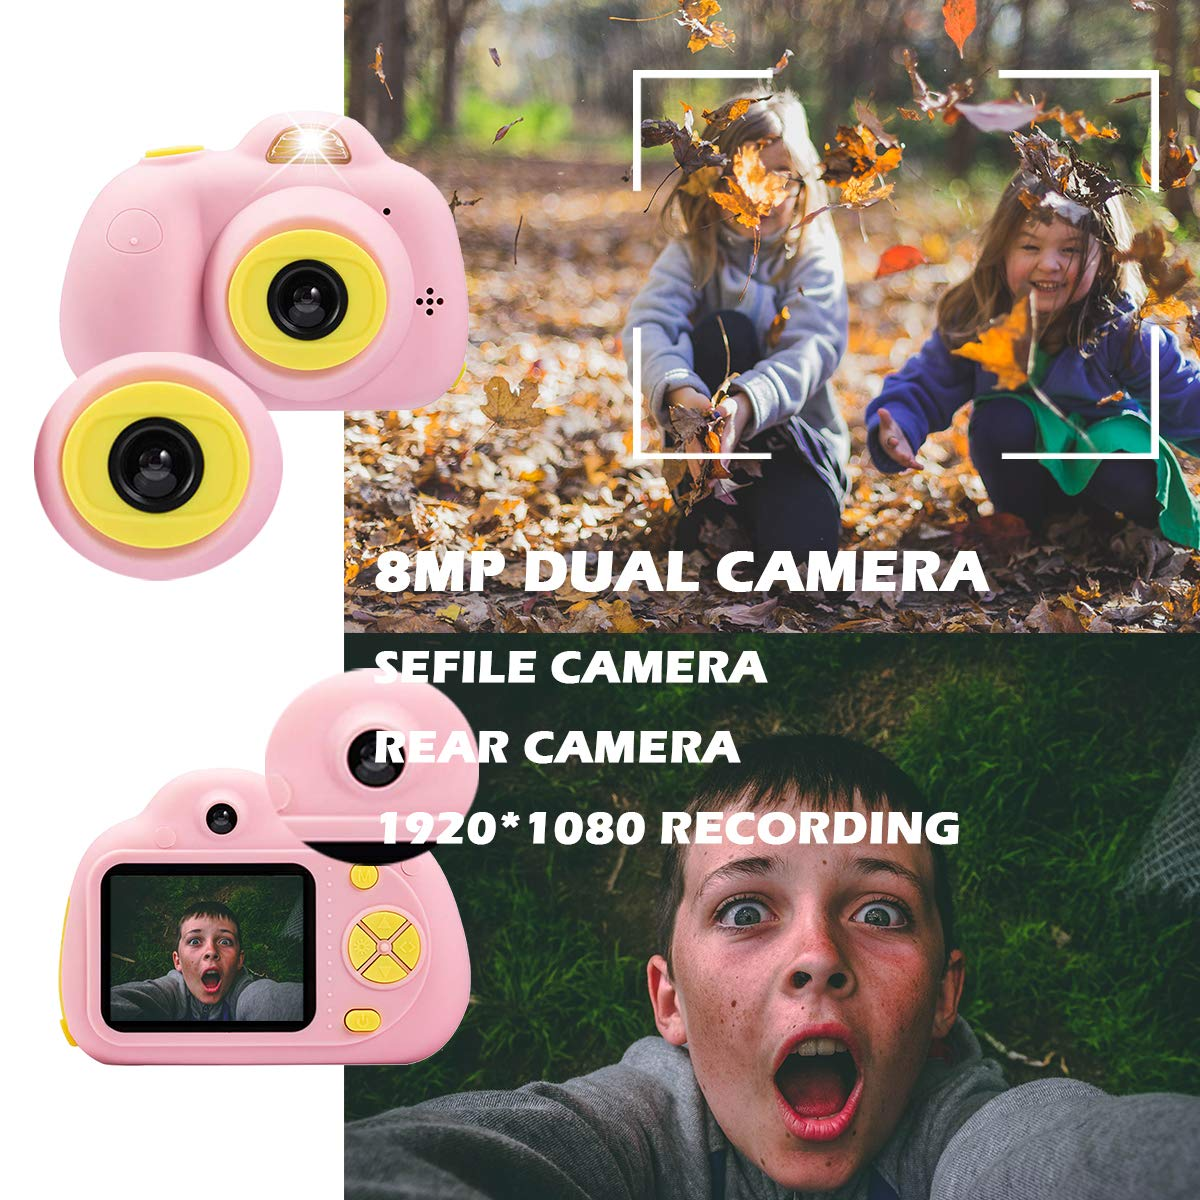 KIDOVE Kids Toys Fun Camera, Waterproof & Shockproof Child Selfie digital game Camcorder, 8MP 1080P dual camera Video Recorder, Creative Birthday Gifts for girls and boys, 16GB TF Card Included (Pink) by KIDOVE (Image #3)